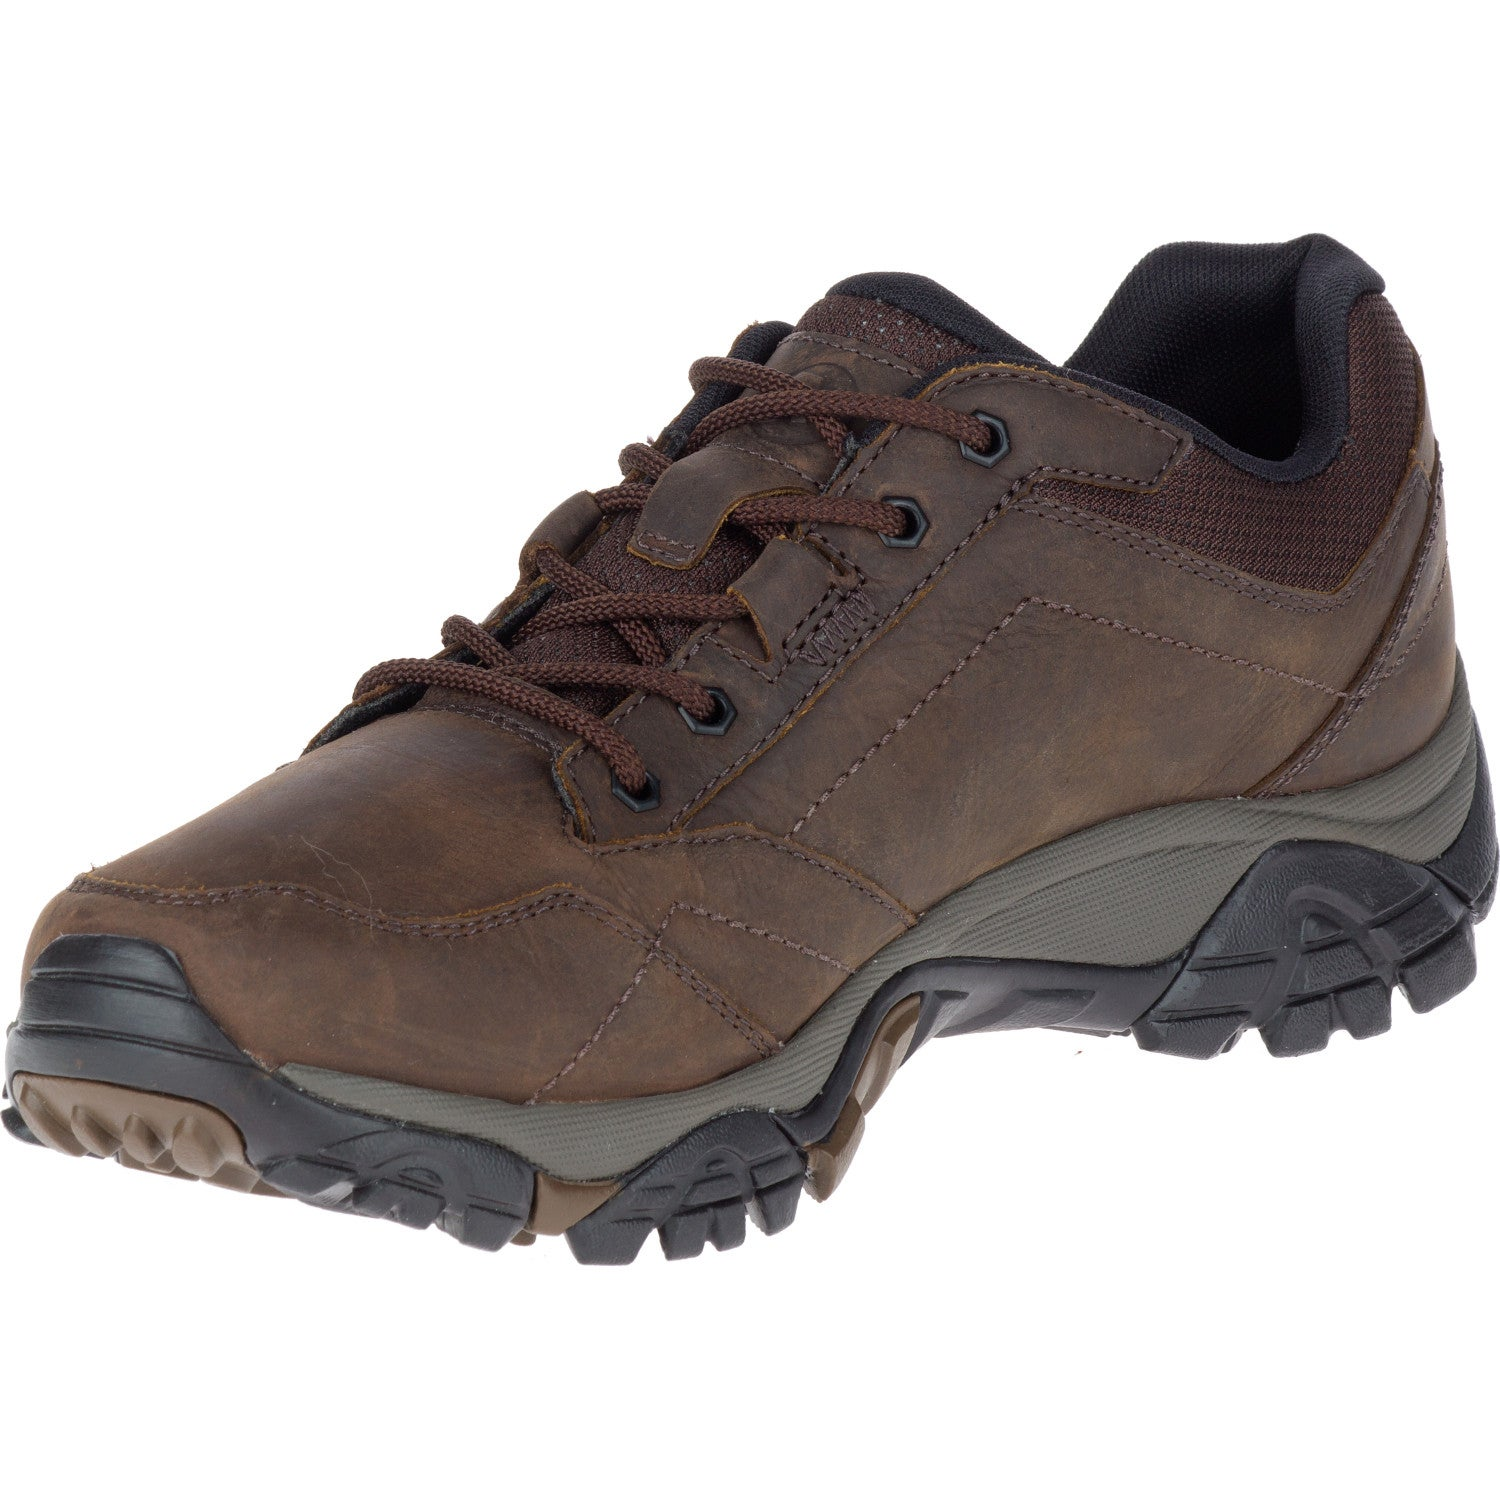 MERRELL Moab Venture Lace J91827 Outdoor Hiking Trekking Trainers Shoes Mens New